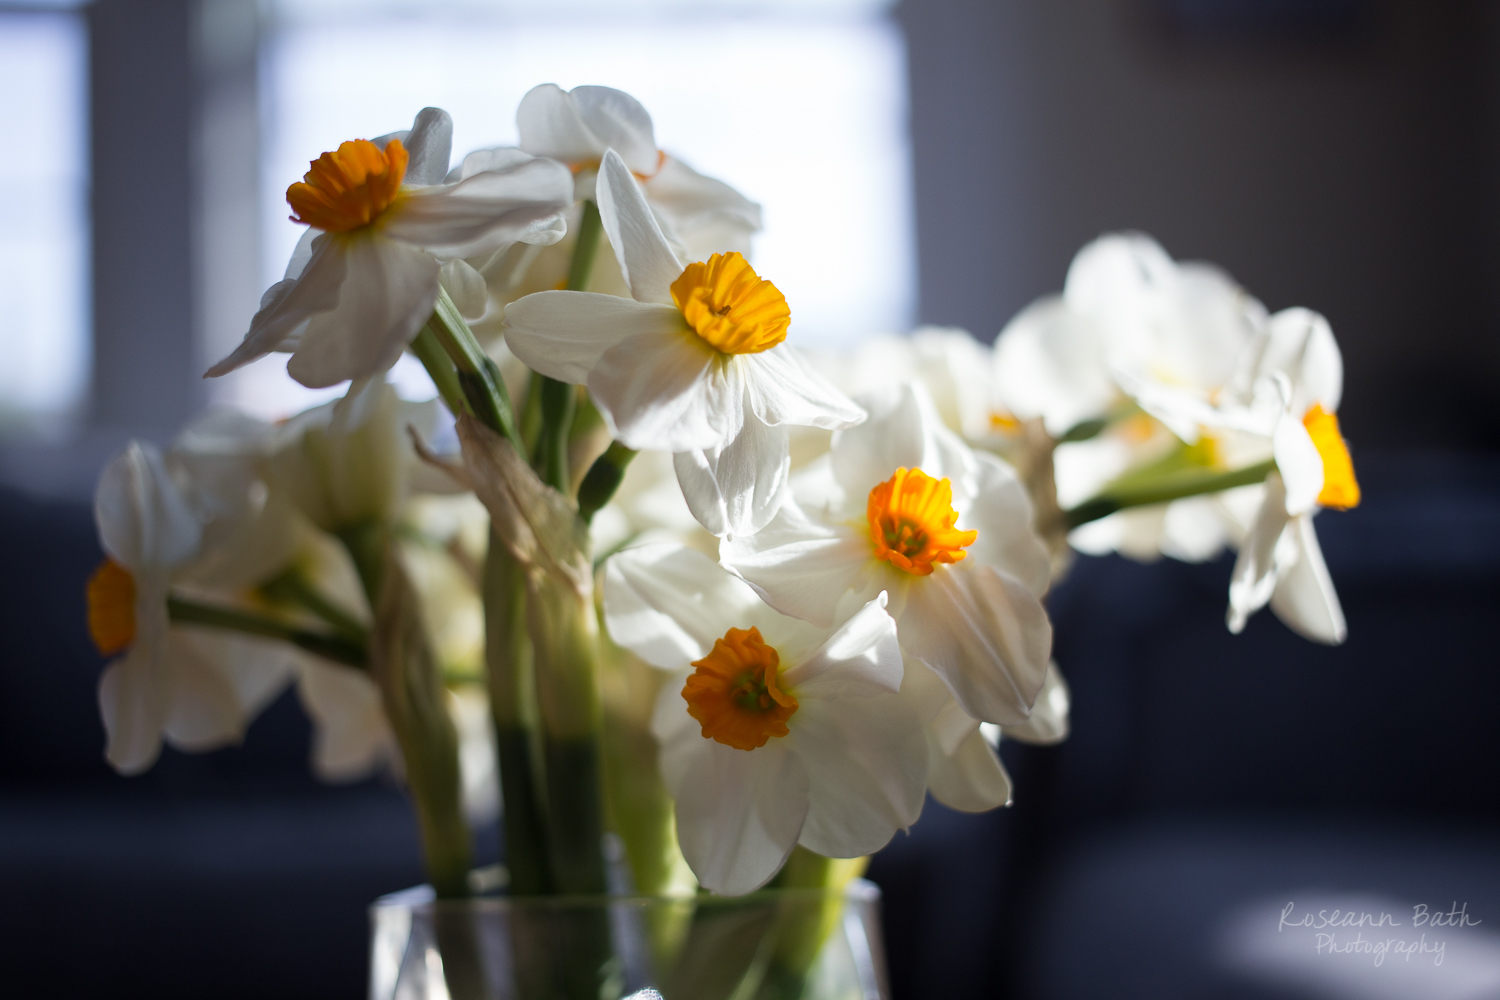 daffodils in the afternoon